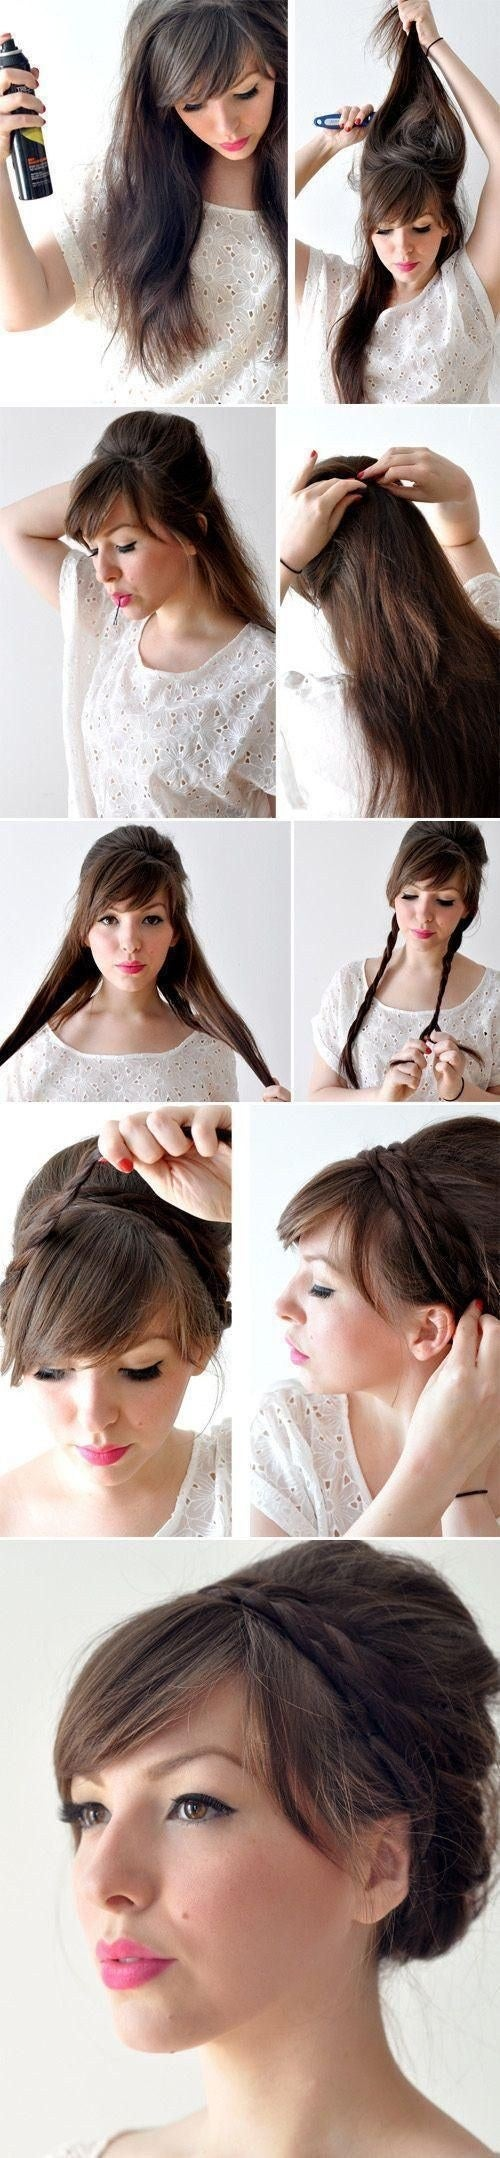 Learn how to DIY the hairstyle here.